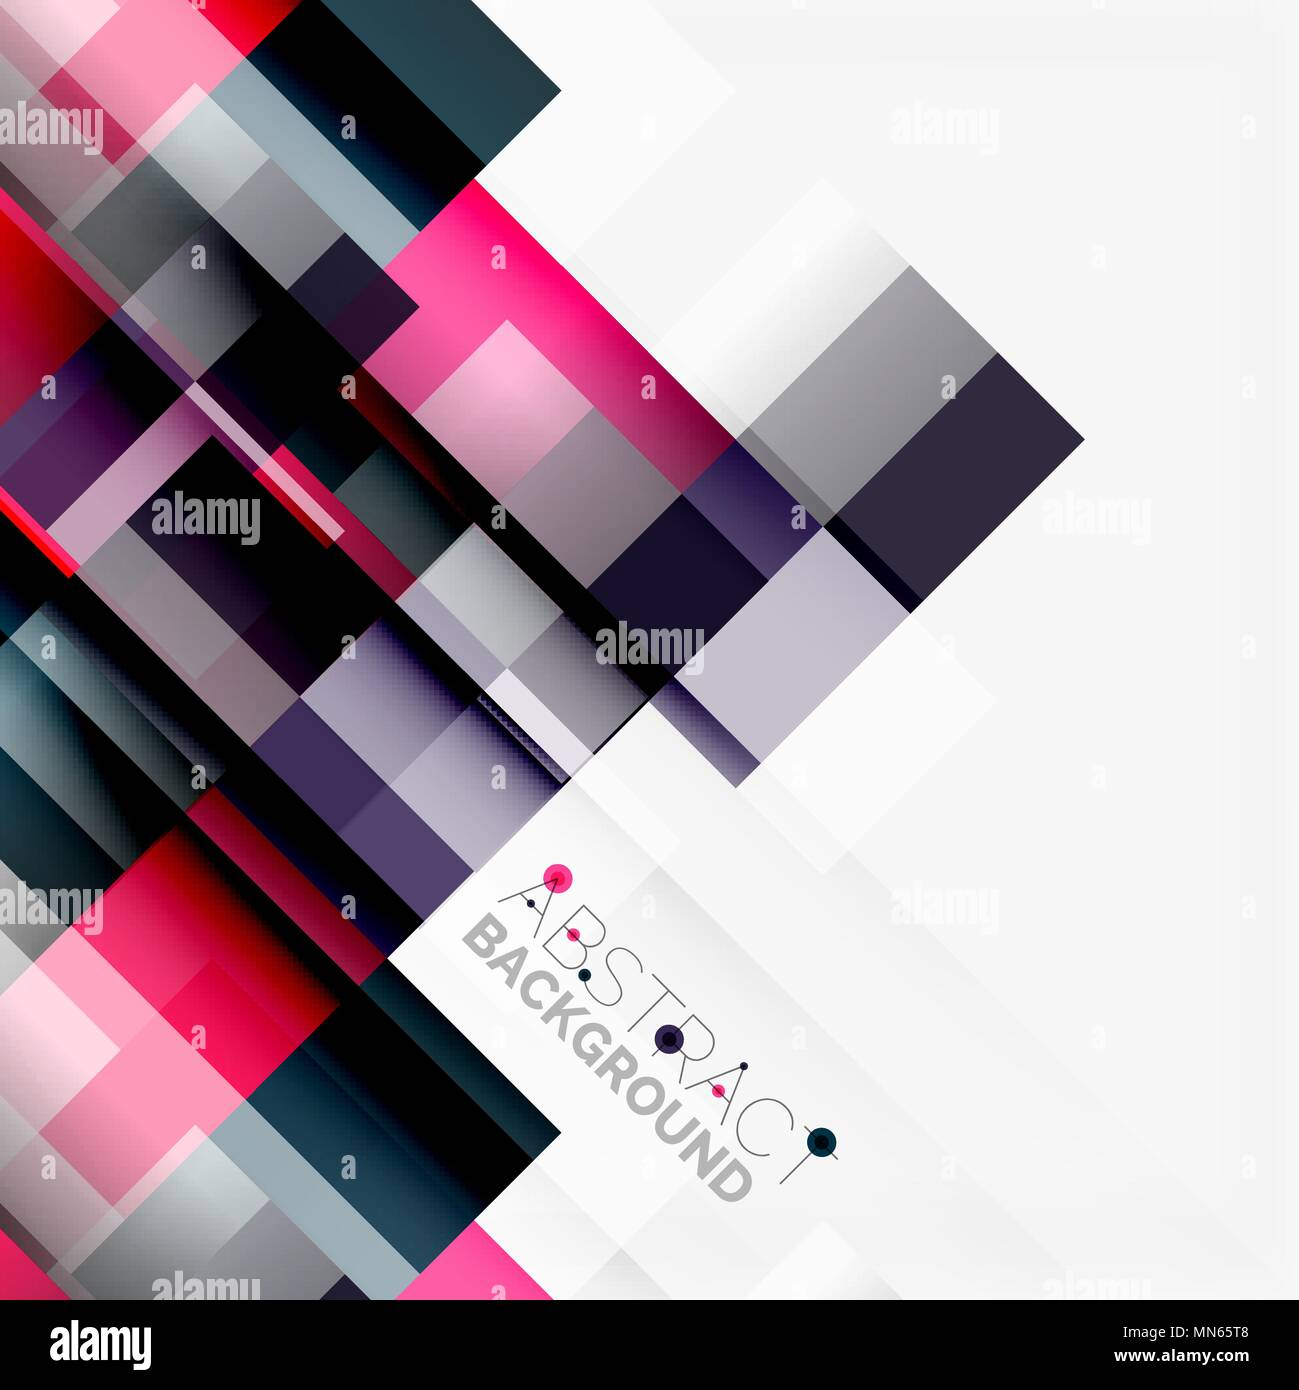 abstract blocks template design background simple geometric shapes